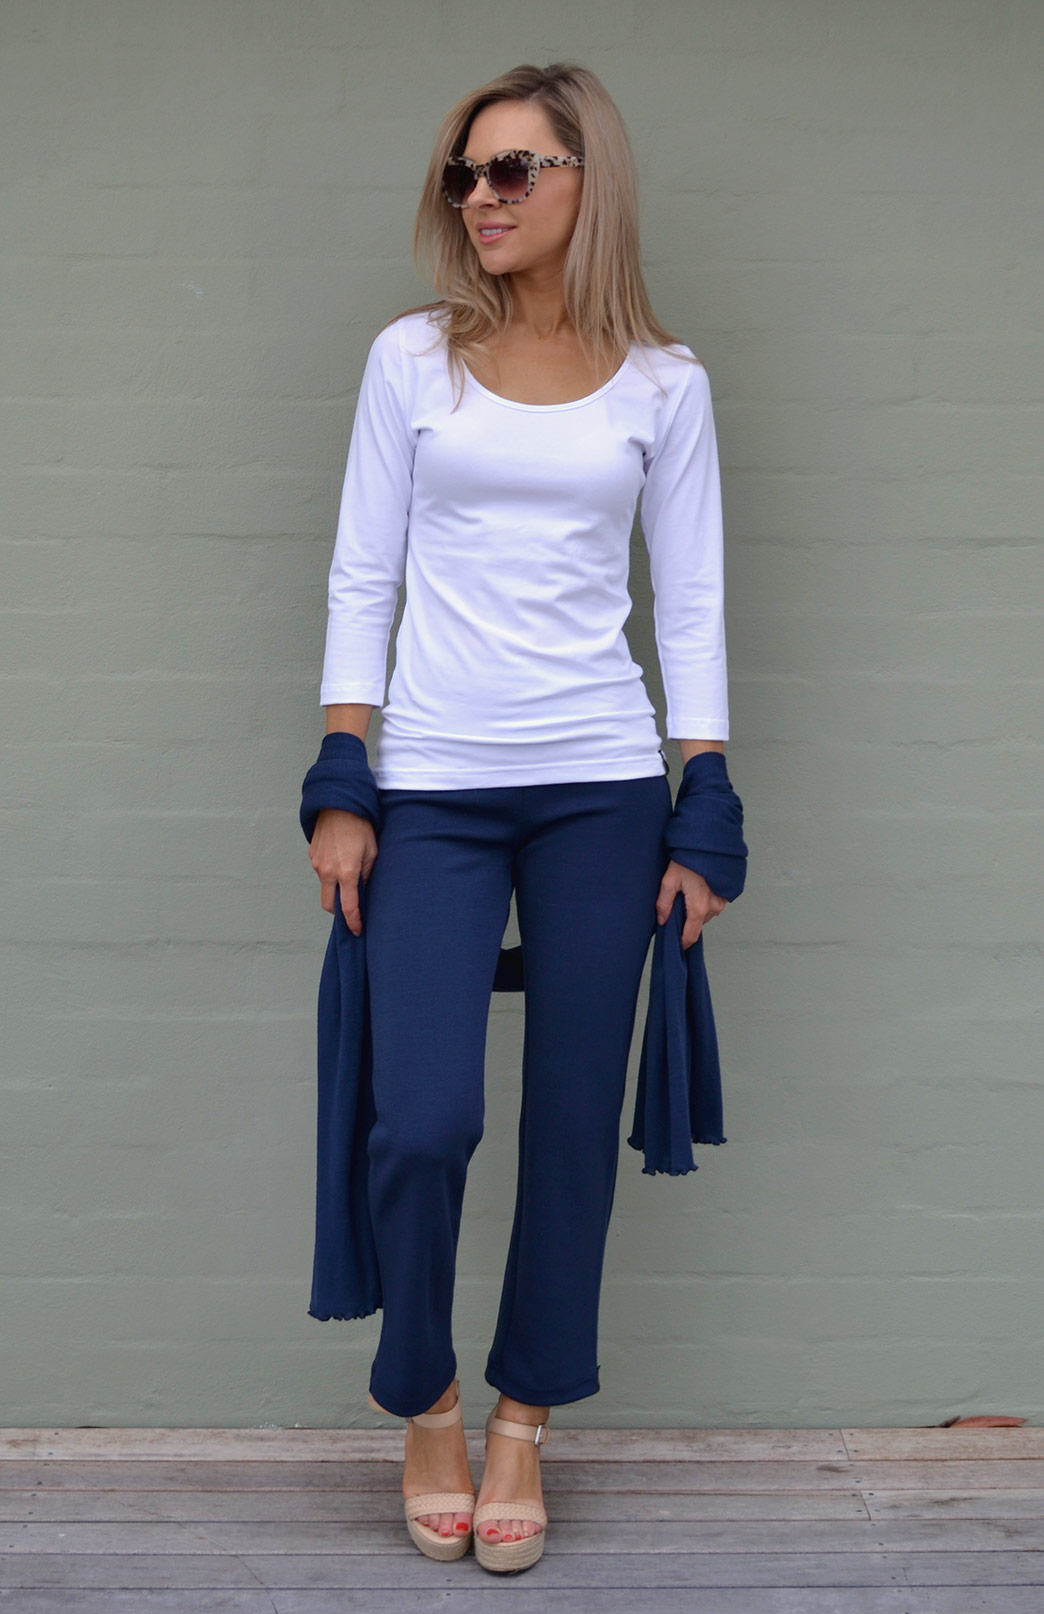 Sienna Top - Women's White Organic Cotton 3/4 Sleeved Scoop Neck Top with Fitted Body - Smitten Merino Tasmania Australia